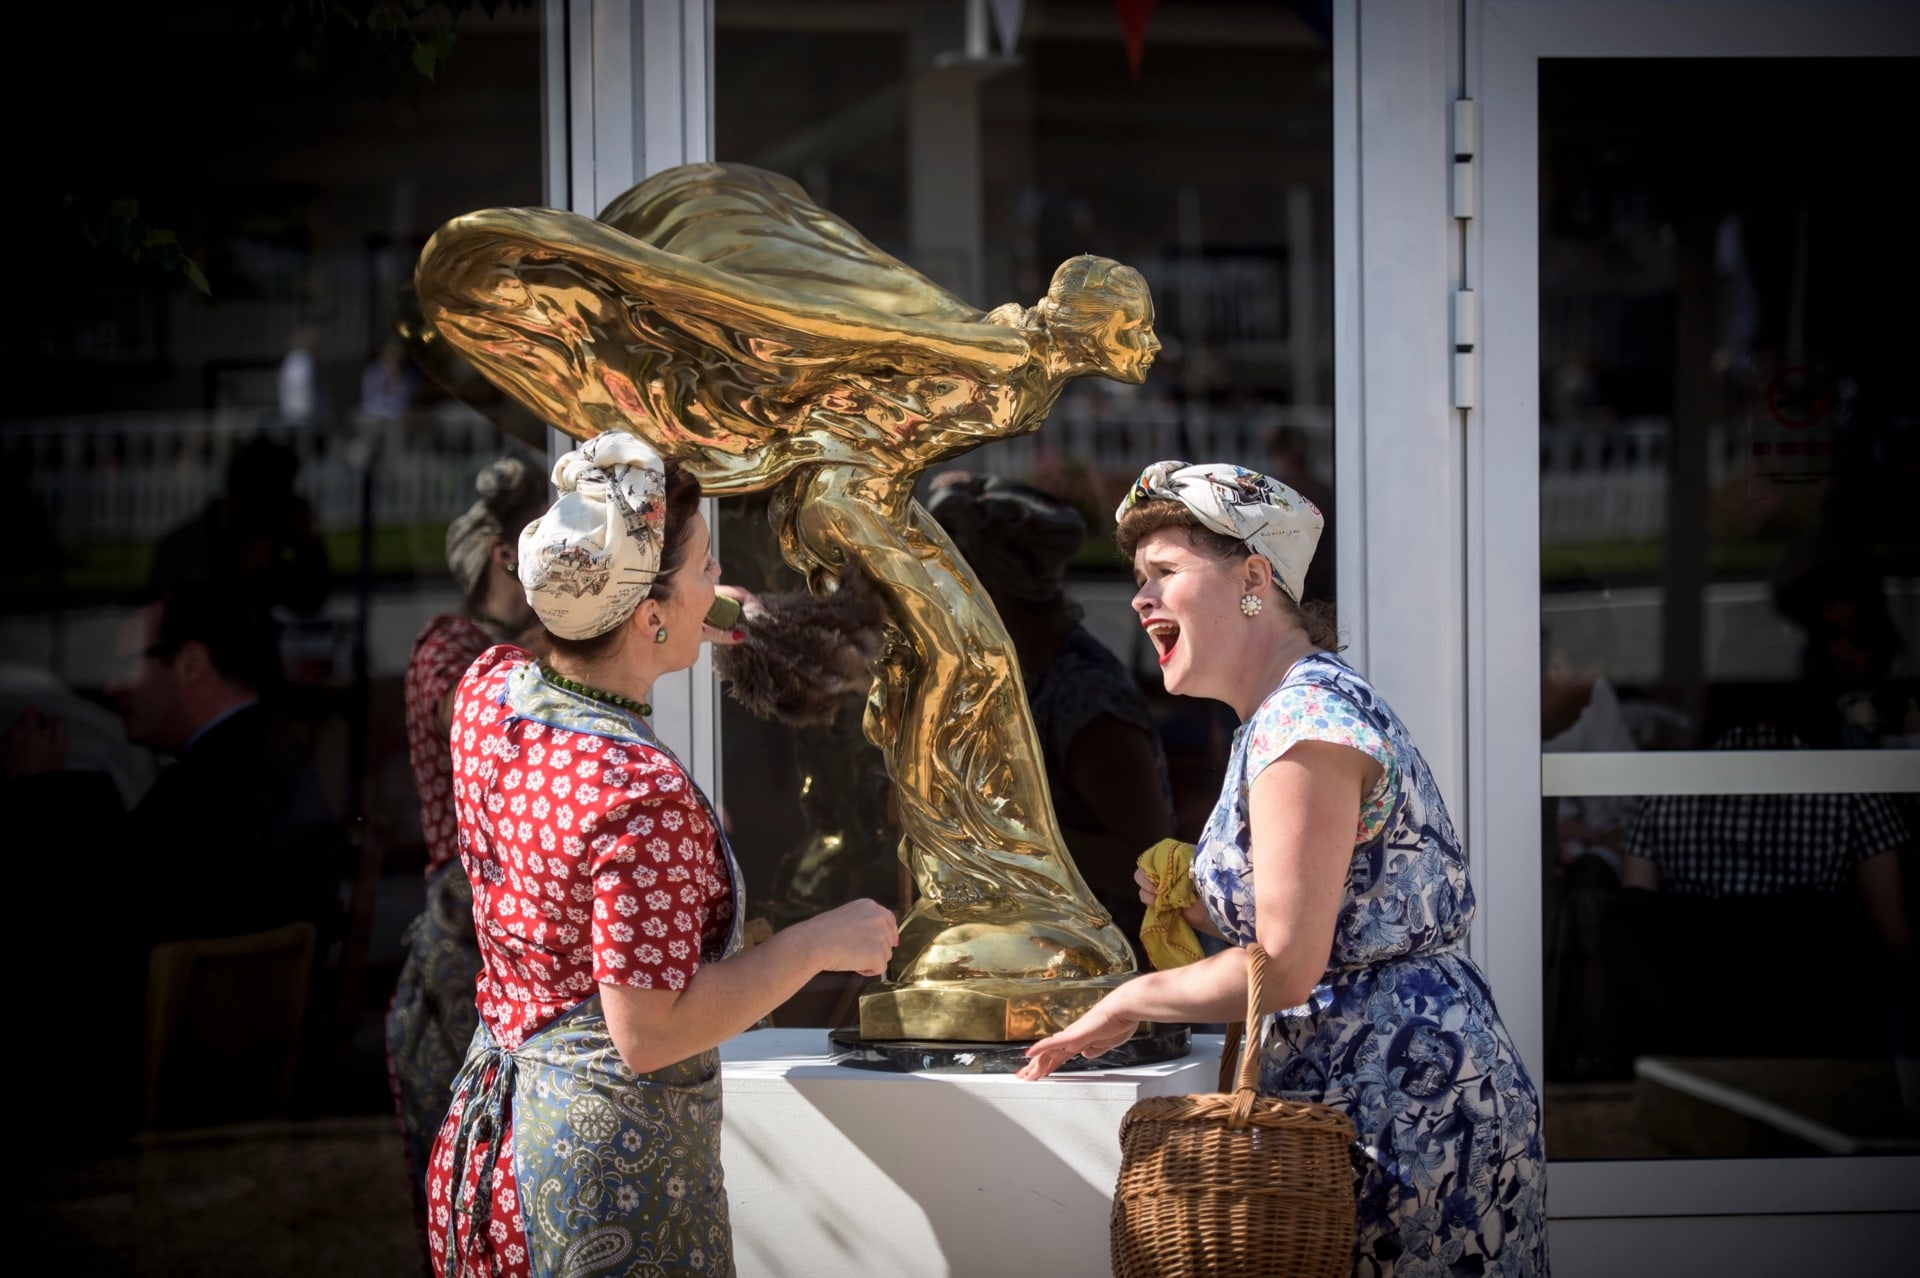 Enthusiasts clad in the fashion of bygone eras stand with a giant gold Spirit of Ecstasy at the Rolls-Royce Goodwood Revival experience.